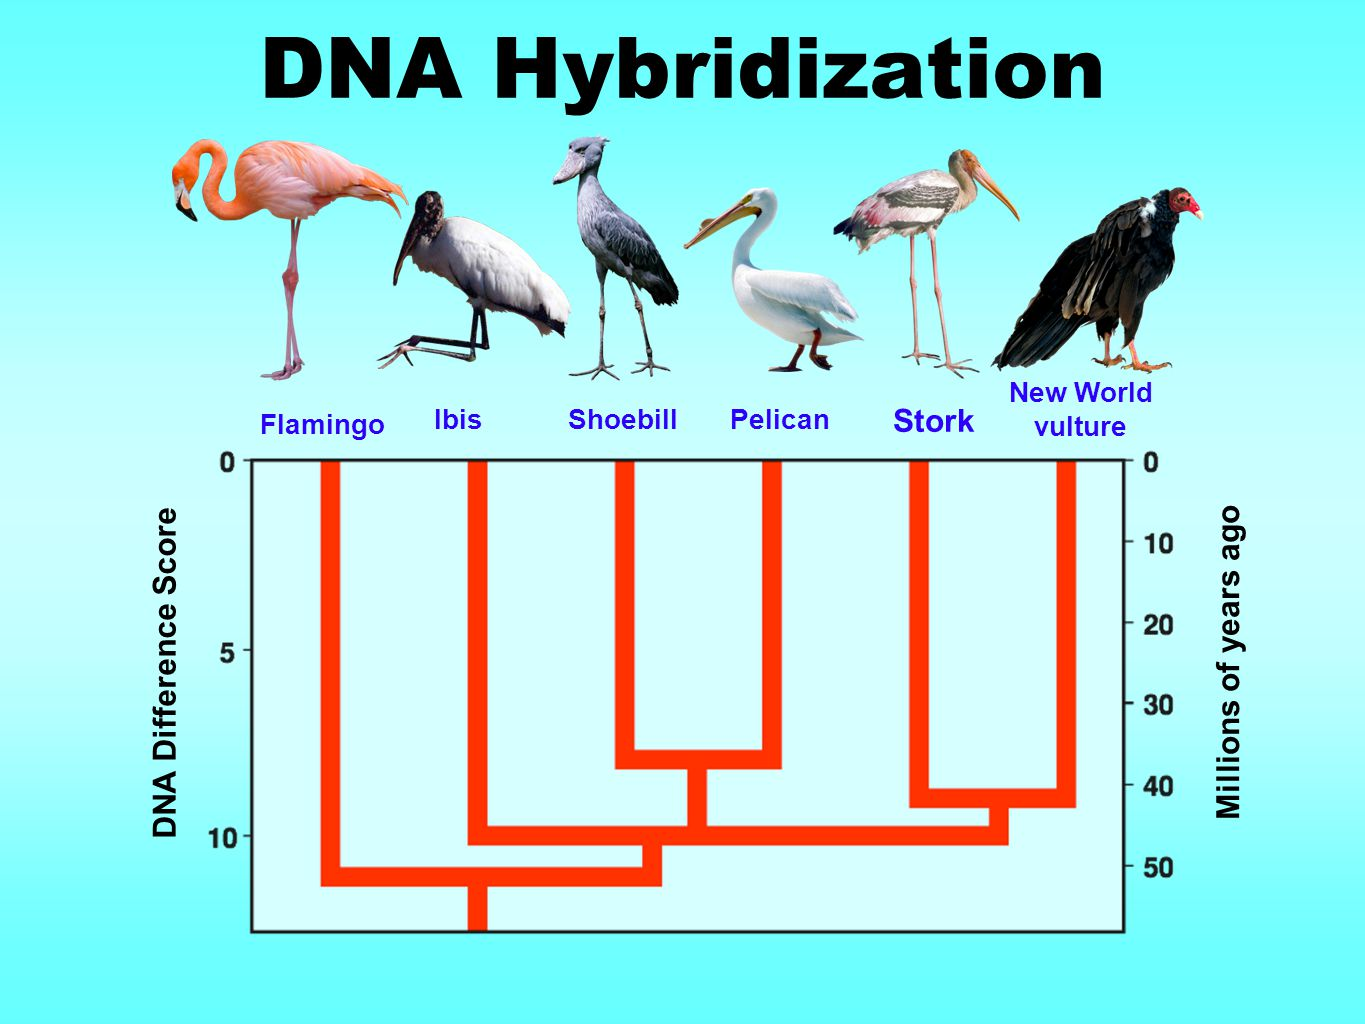 DNA Hybridization Stork Millions of years ago DNA Difference Score